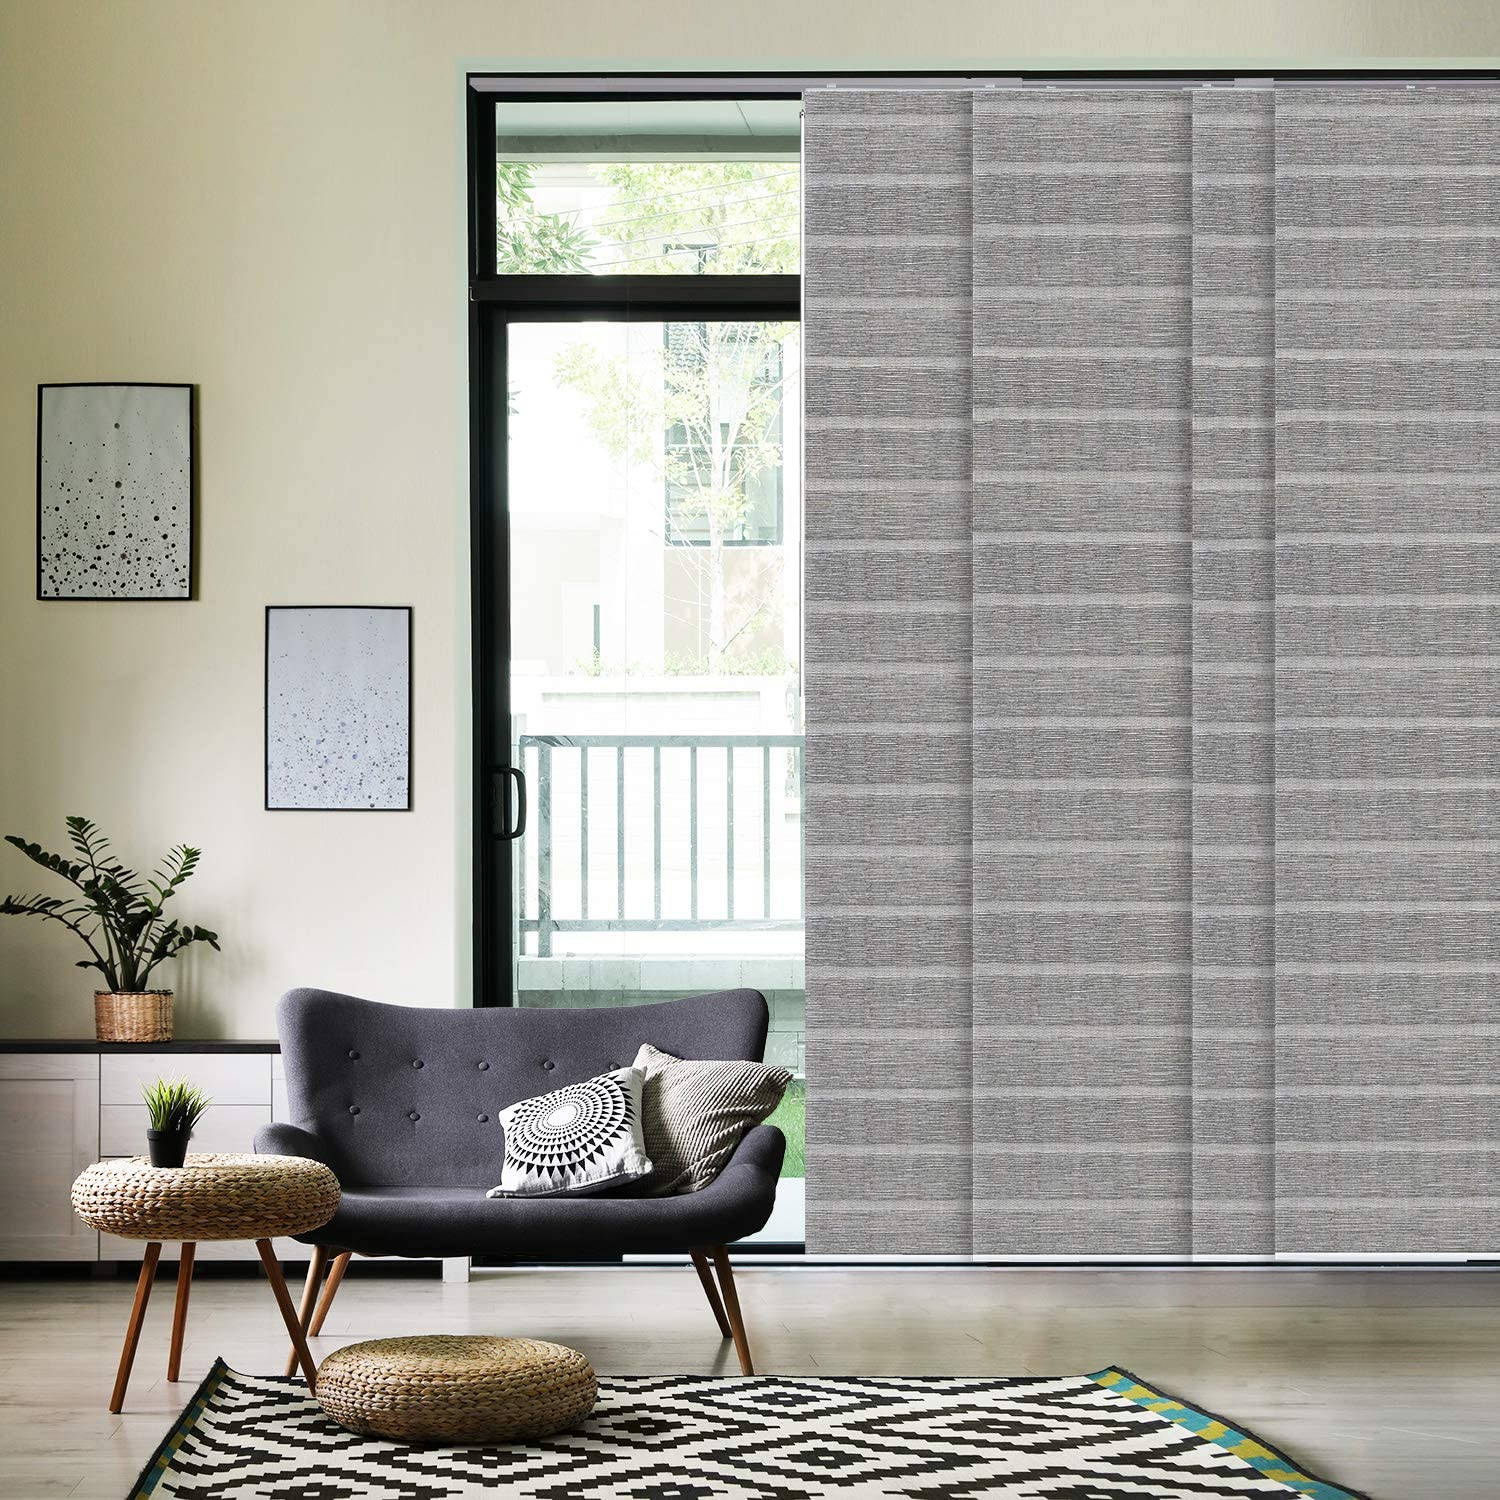 Details about  /Henlow Graphite Made To Measure Textured Dim-out Roller Blind Complete Blind